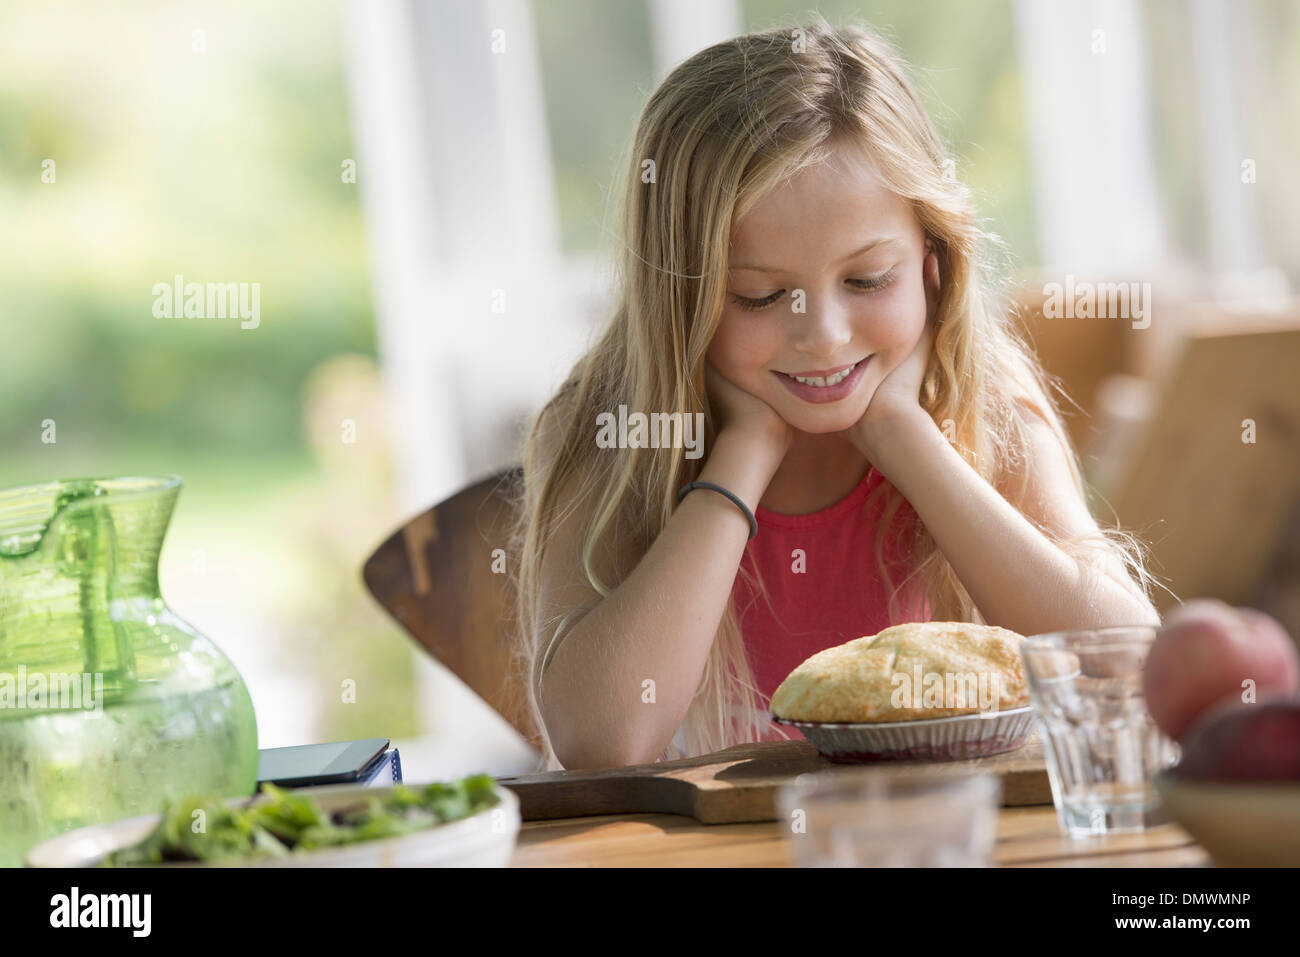 A young girl looking at a pastry pie smiling. - Stock Image